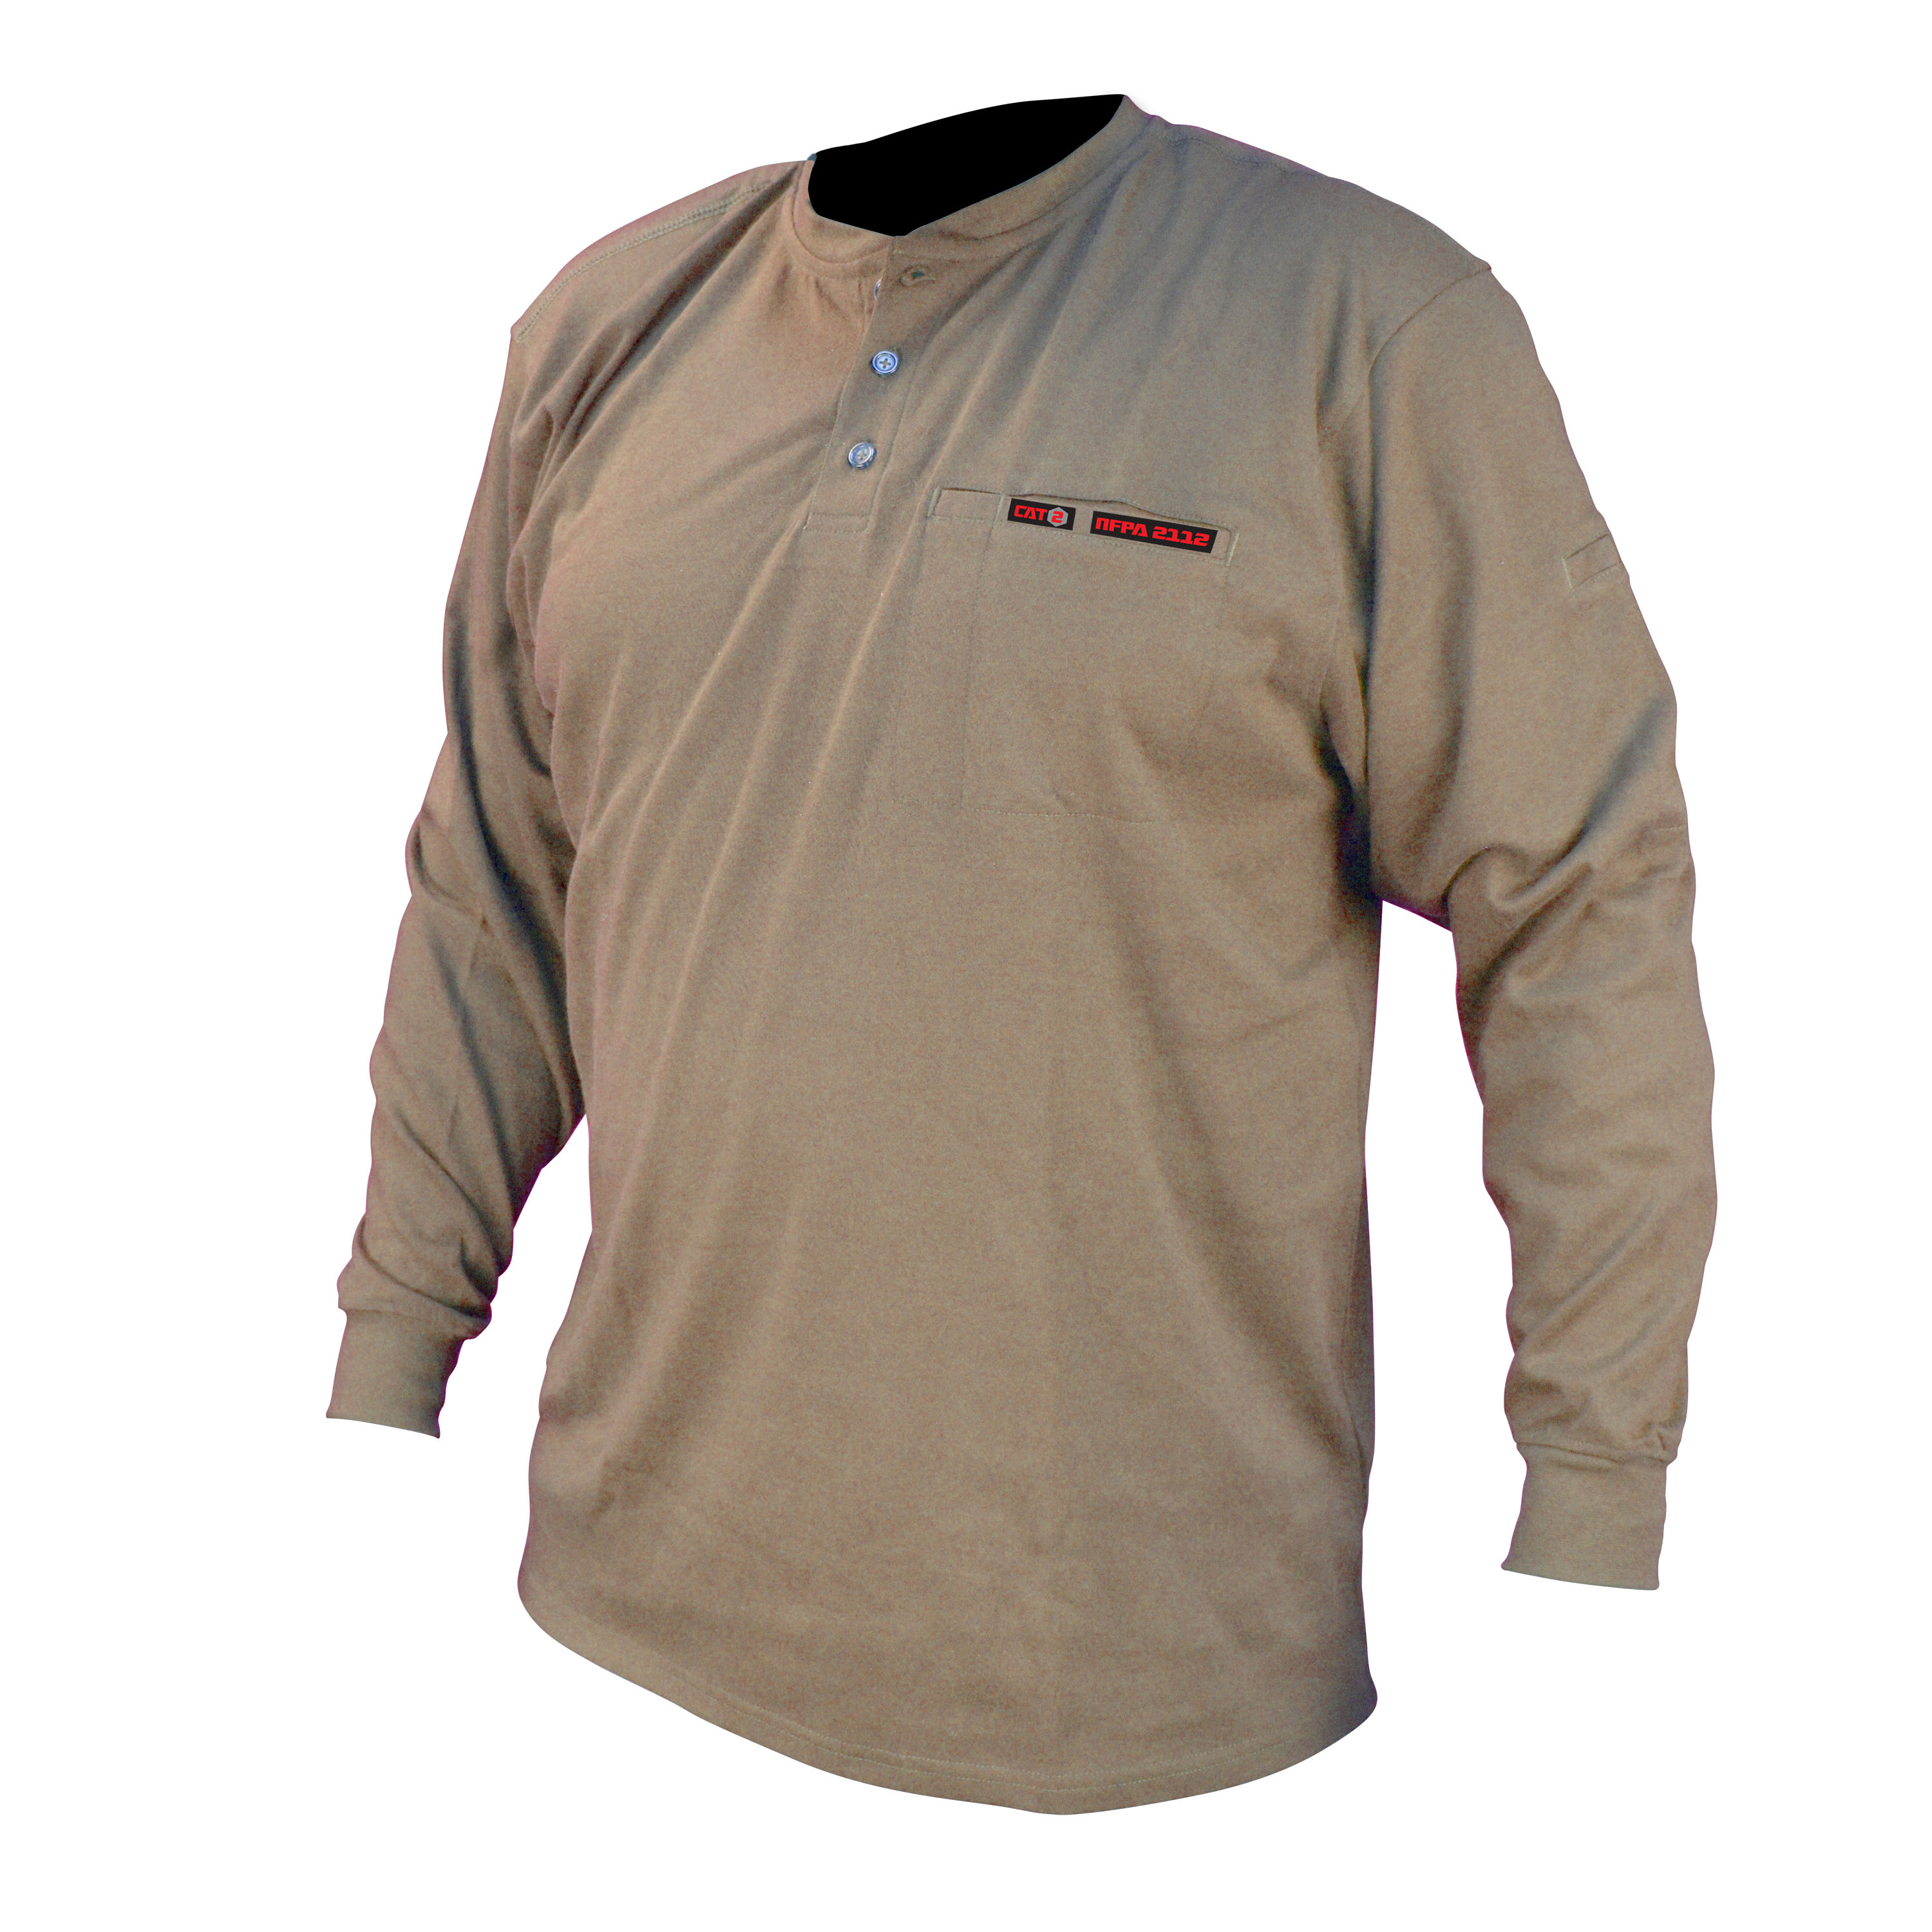 c95caa1026b7 Radians Men s Volcore™ Fire Resistant Shirt — iWantWorkwear